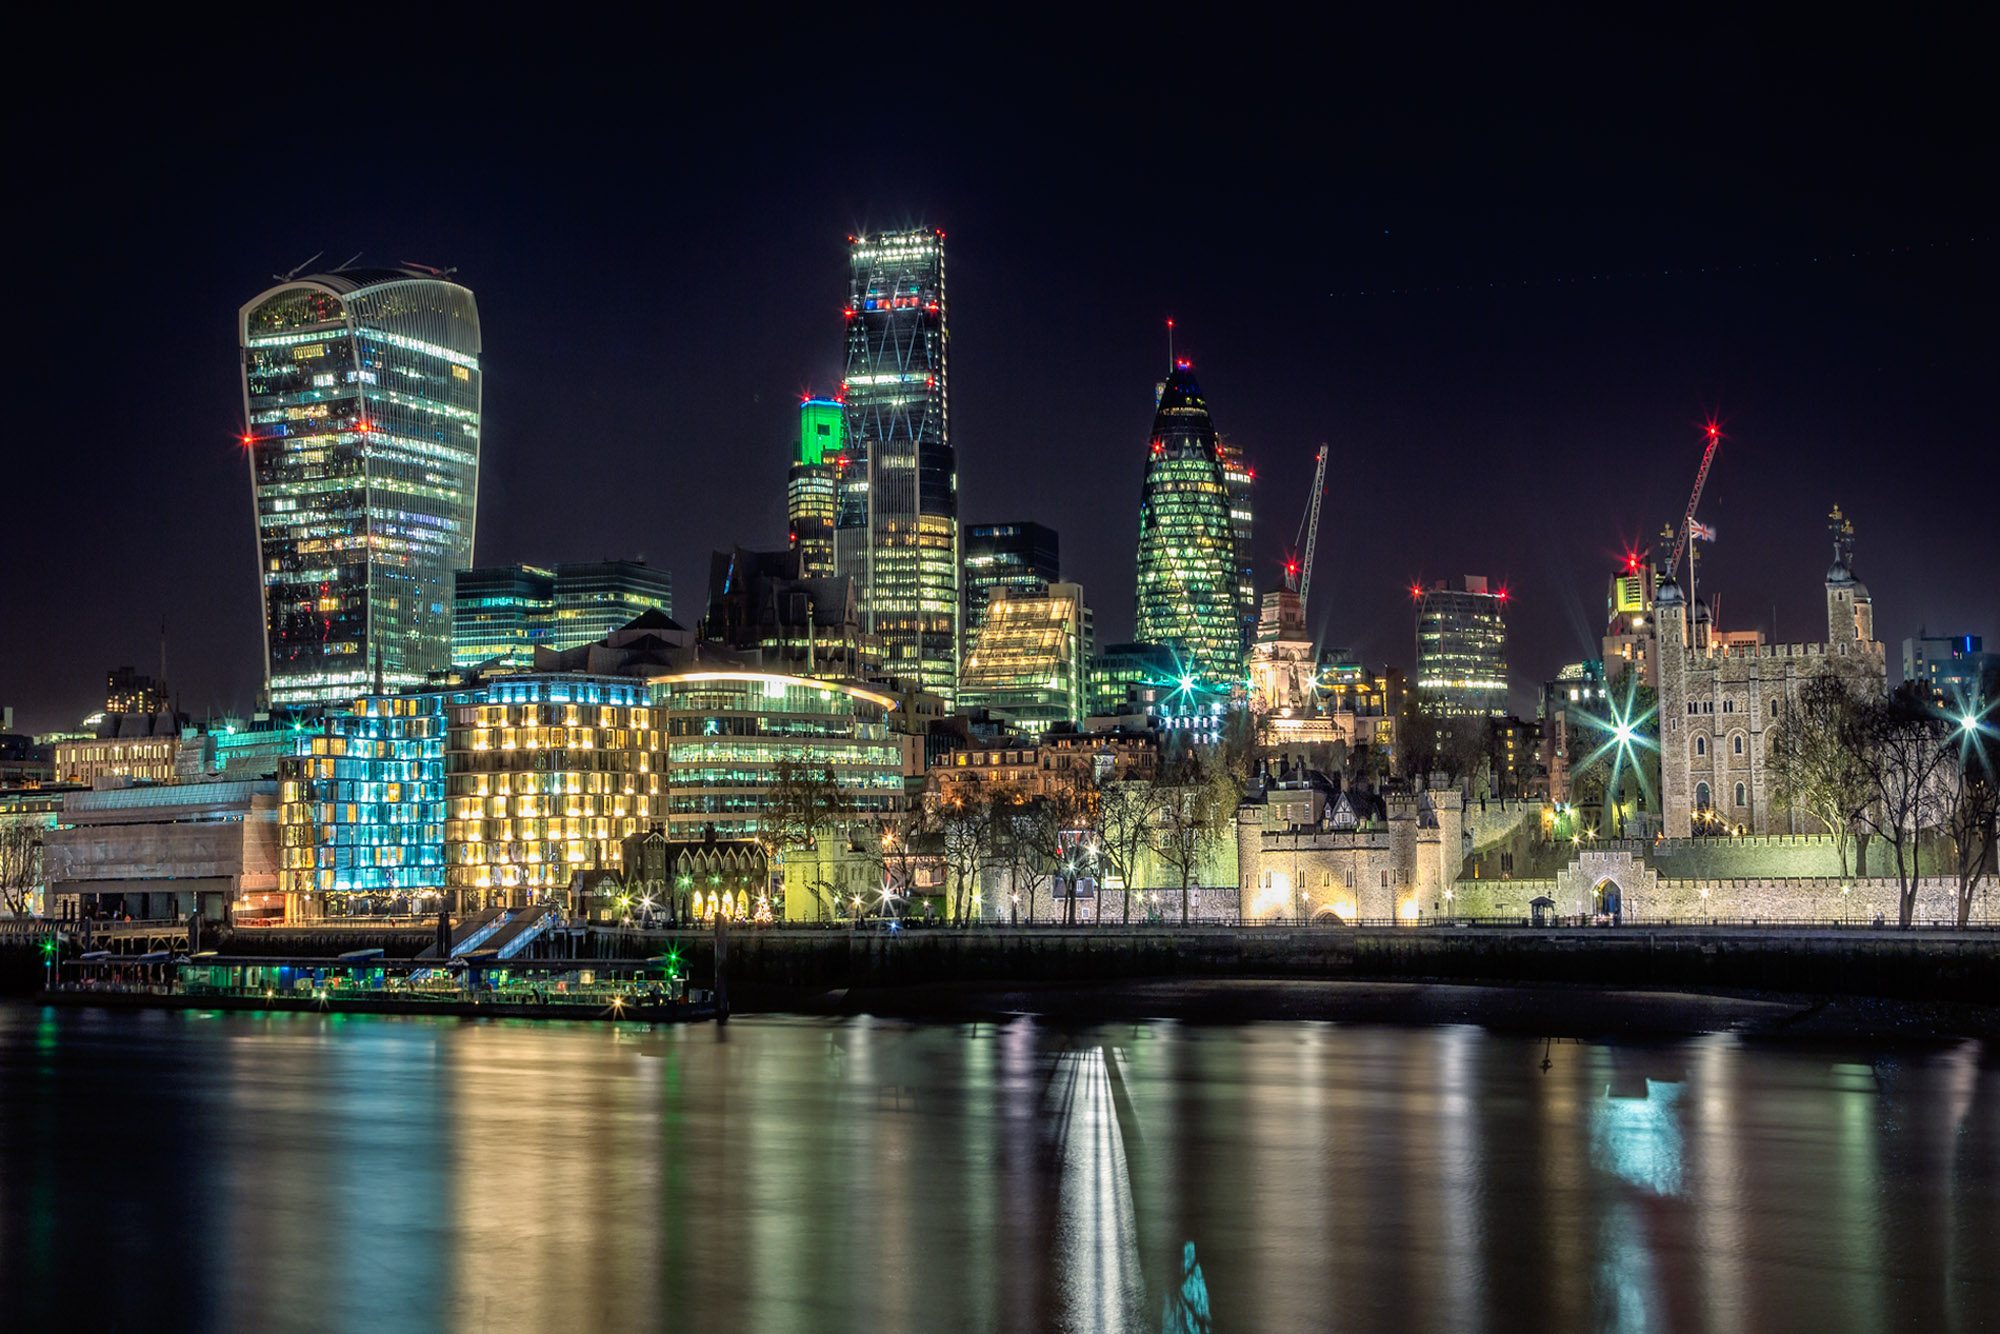 long exposure night photography of the London skyline beside the River Thames